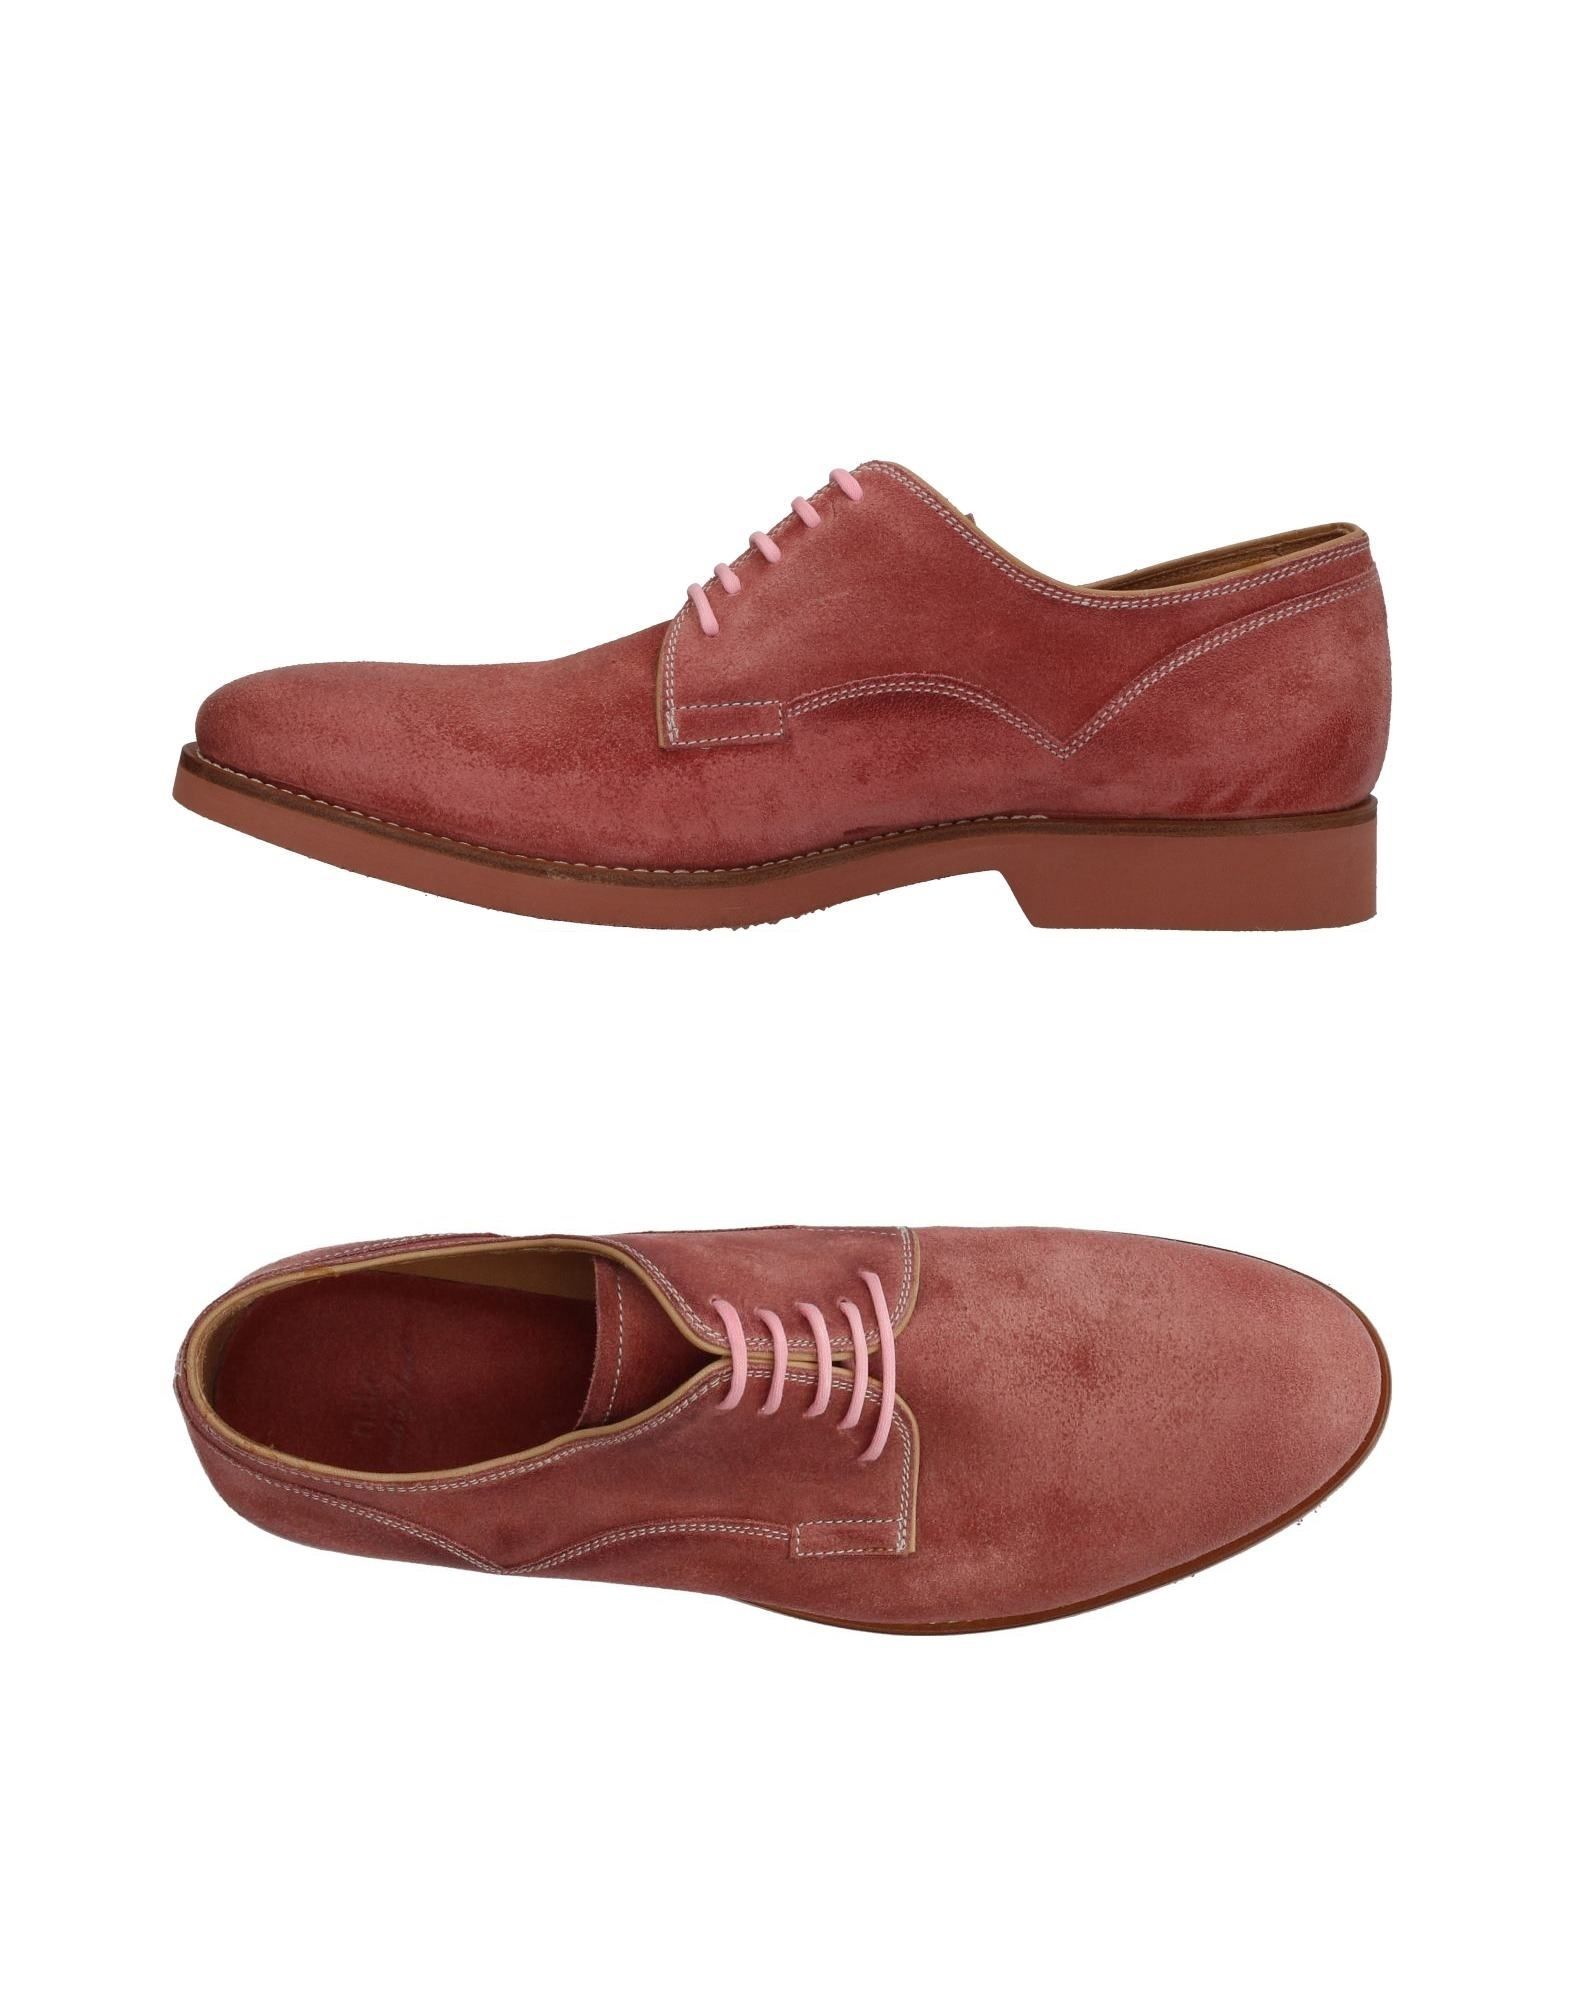 Chaussures À Lacets N.D.C. Made By Hand Homme - Chaussures À Lacets N.D.C. Made By Hand sur